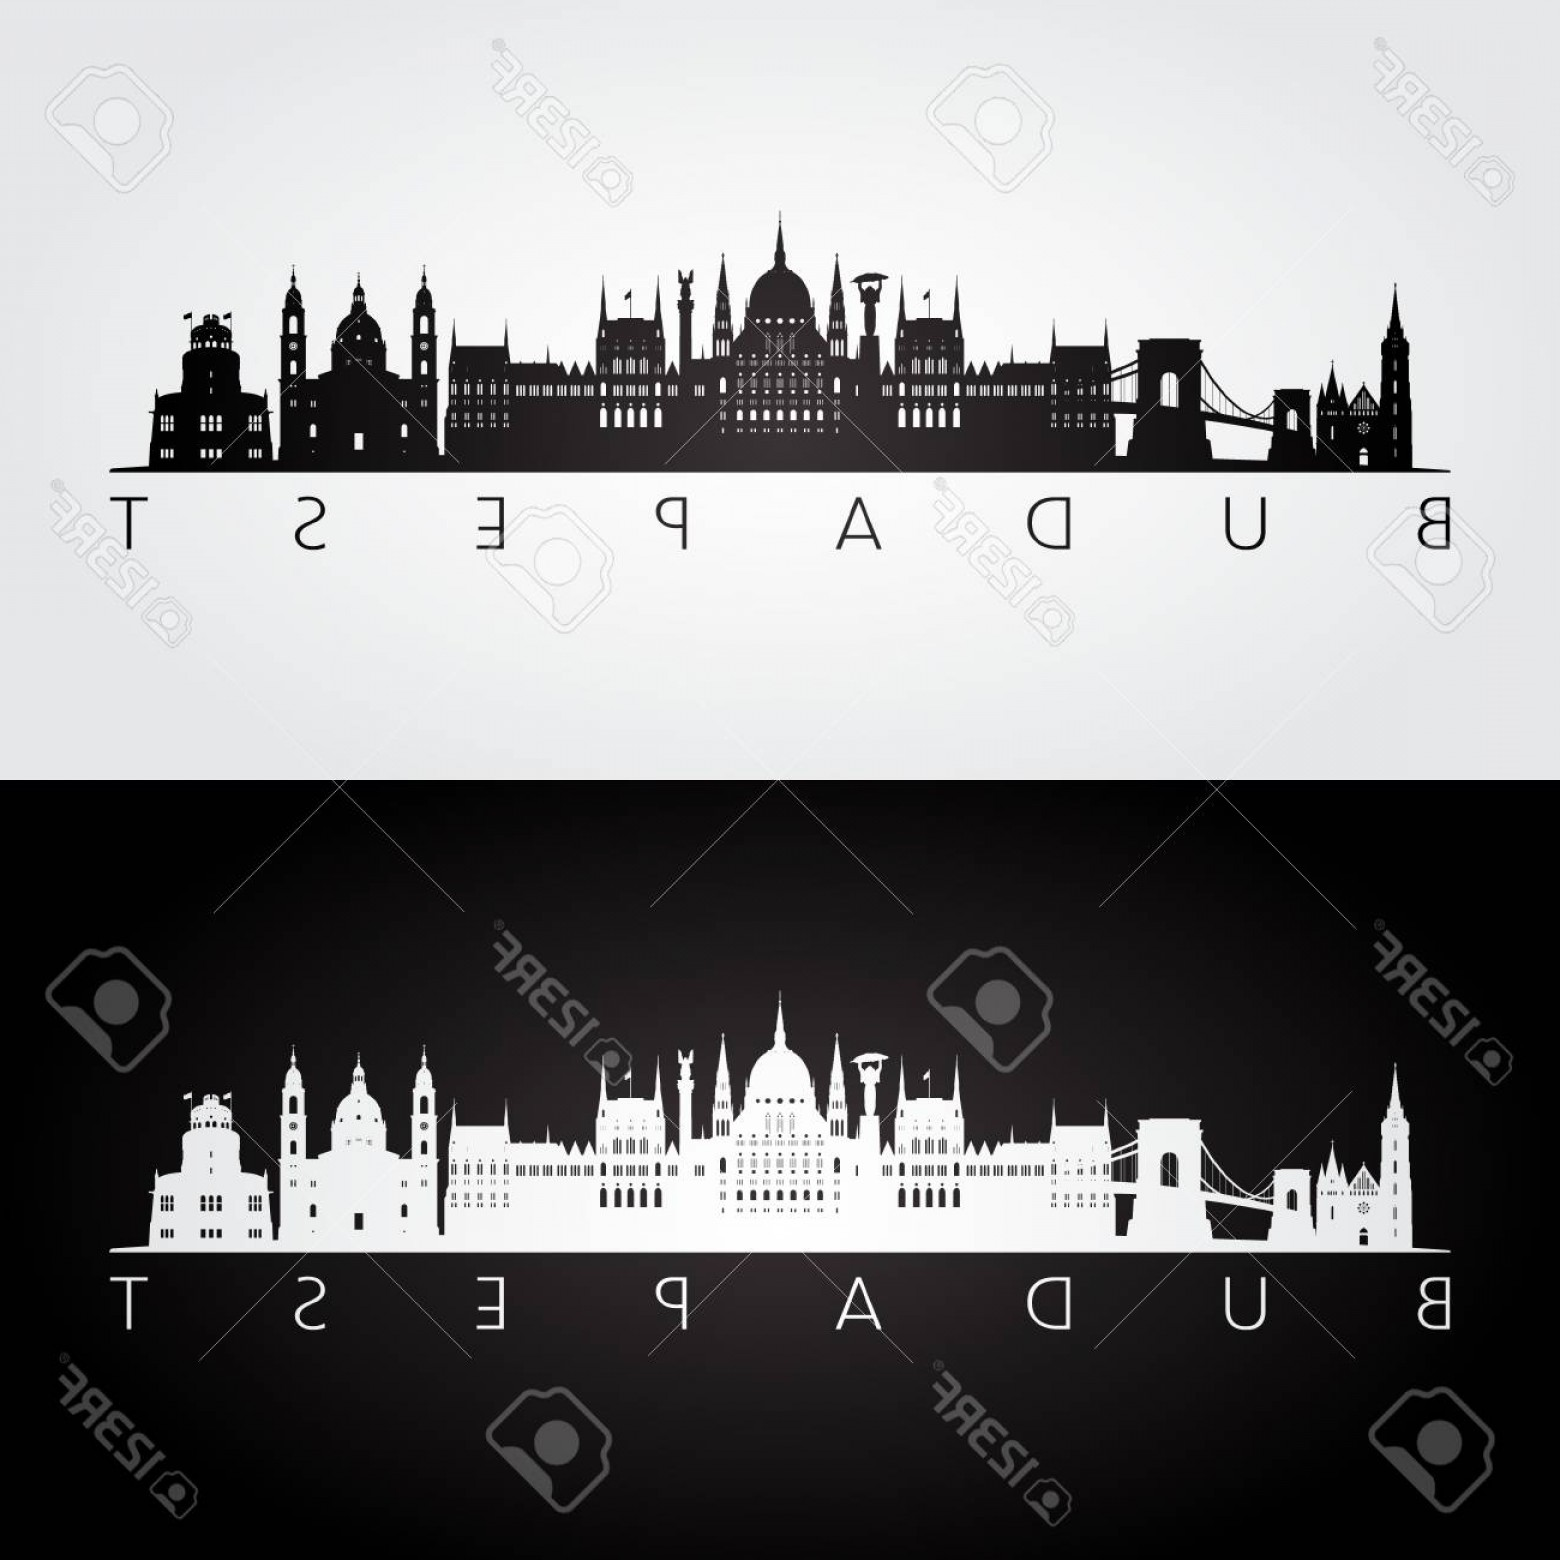 Wicked Boston Skyline Silhouette Vector: Photostock Vector Budapest Skyline And Landmarks Silhouette Black And White Design Vector Illustration